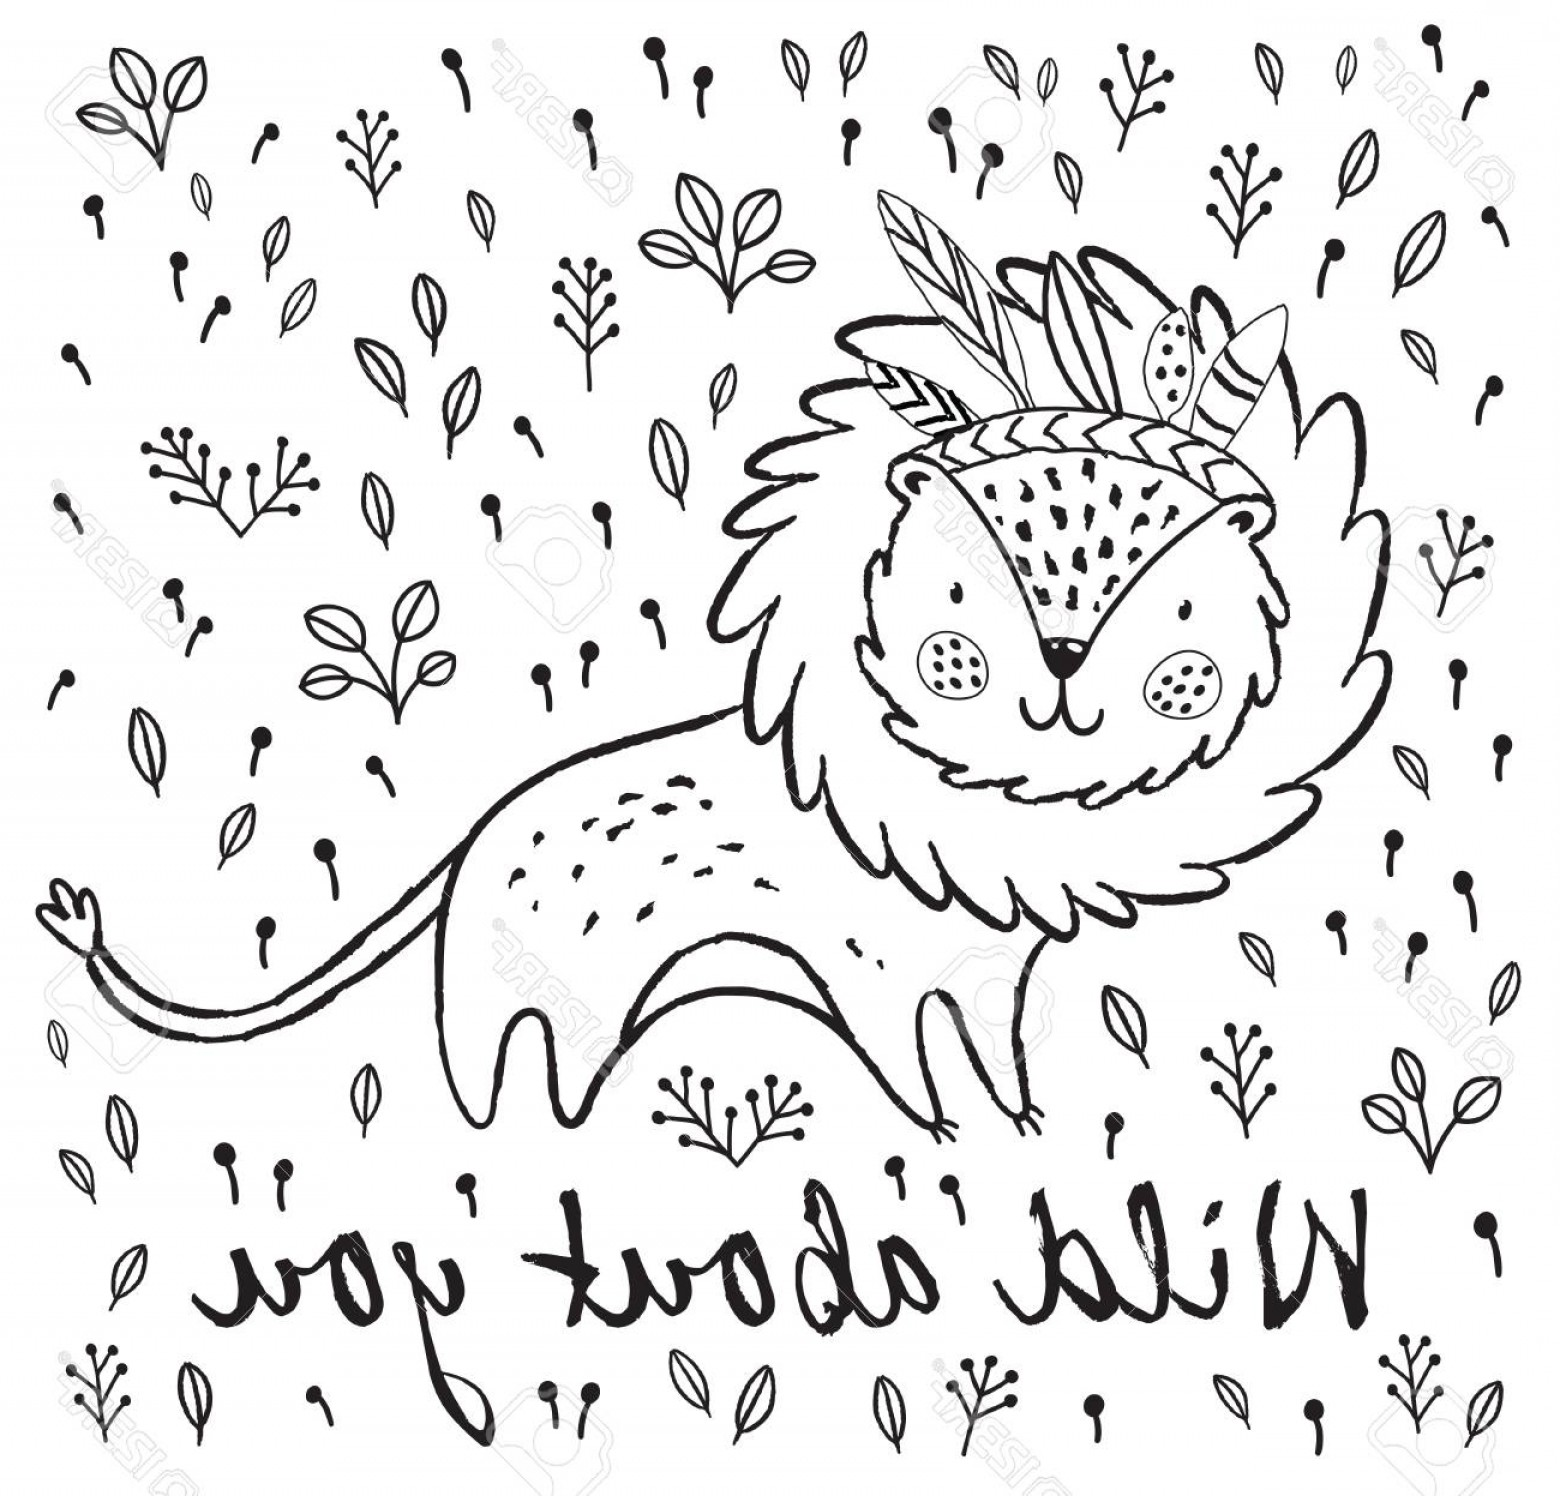 Funny Black And White Vector: Photostock Vector Cartoon Character Fun Lion Black And White Vector Illustration Funny Cartoon Lion Vector Print With